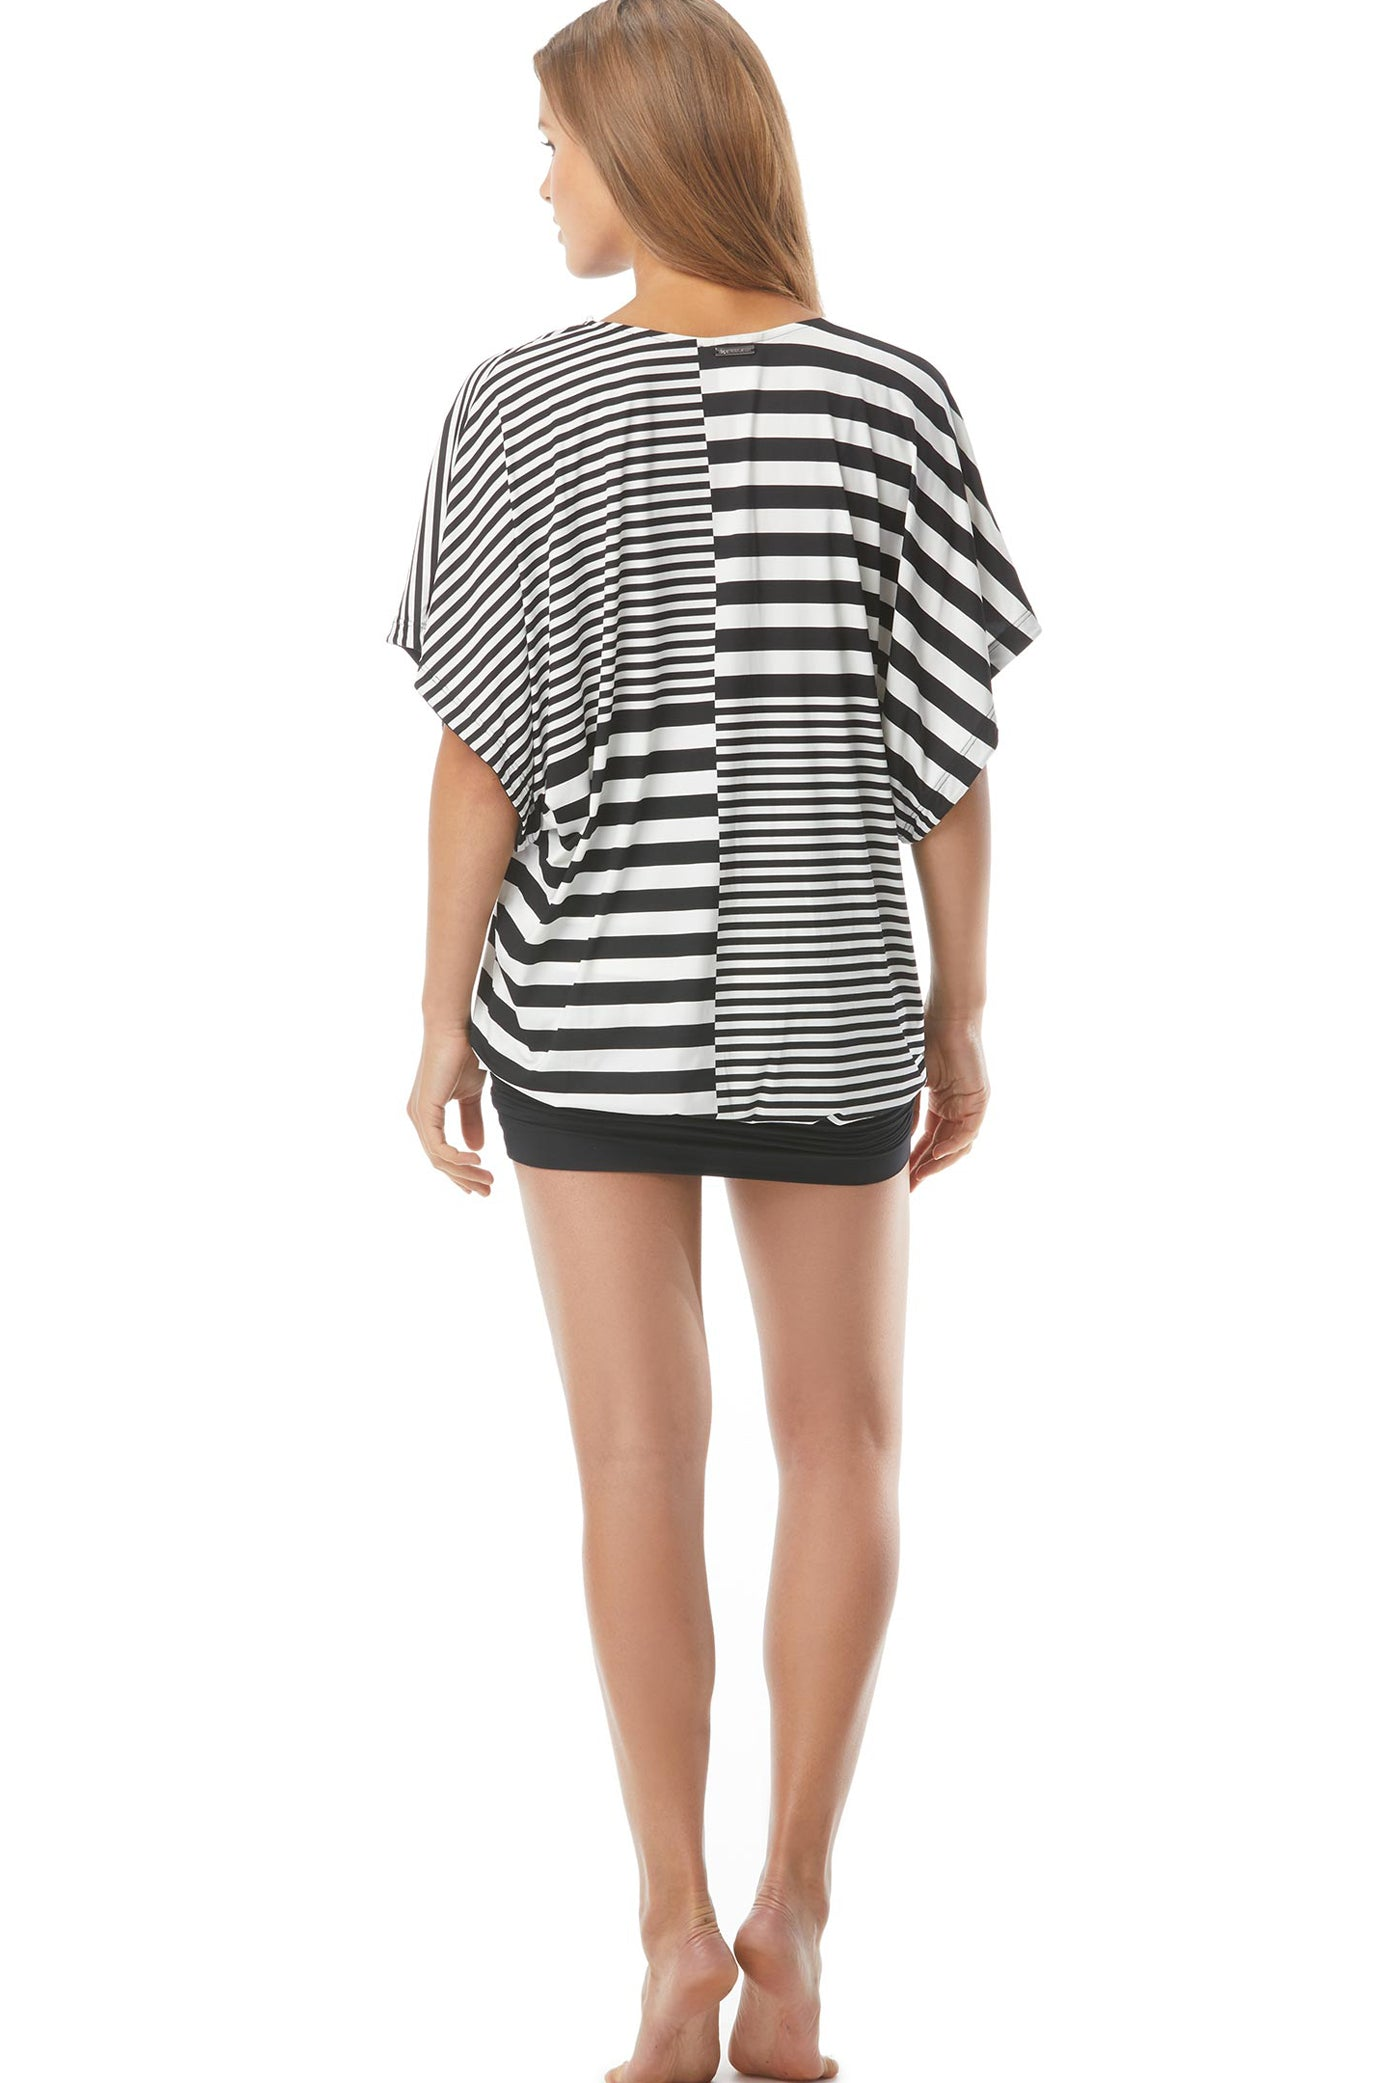 Black and white striped cover up Belted V-Neck Caftan  85% Nylon/15% Spandex